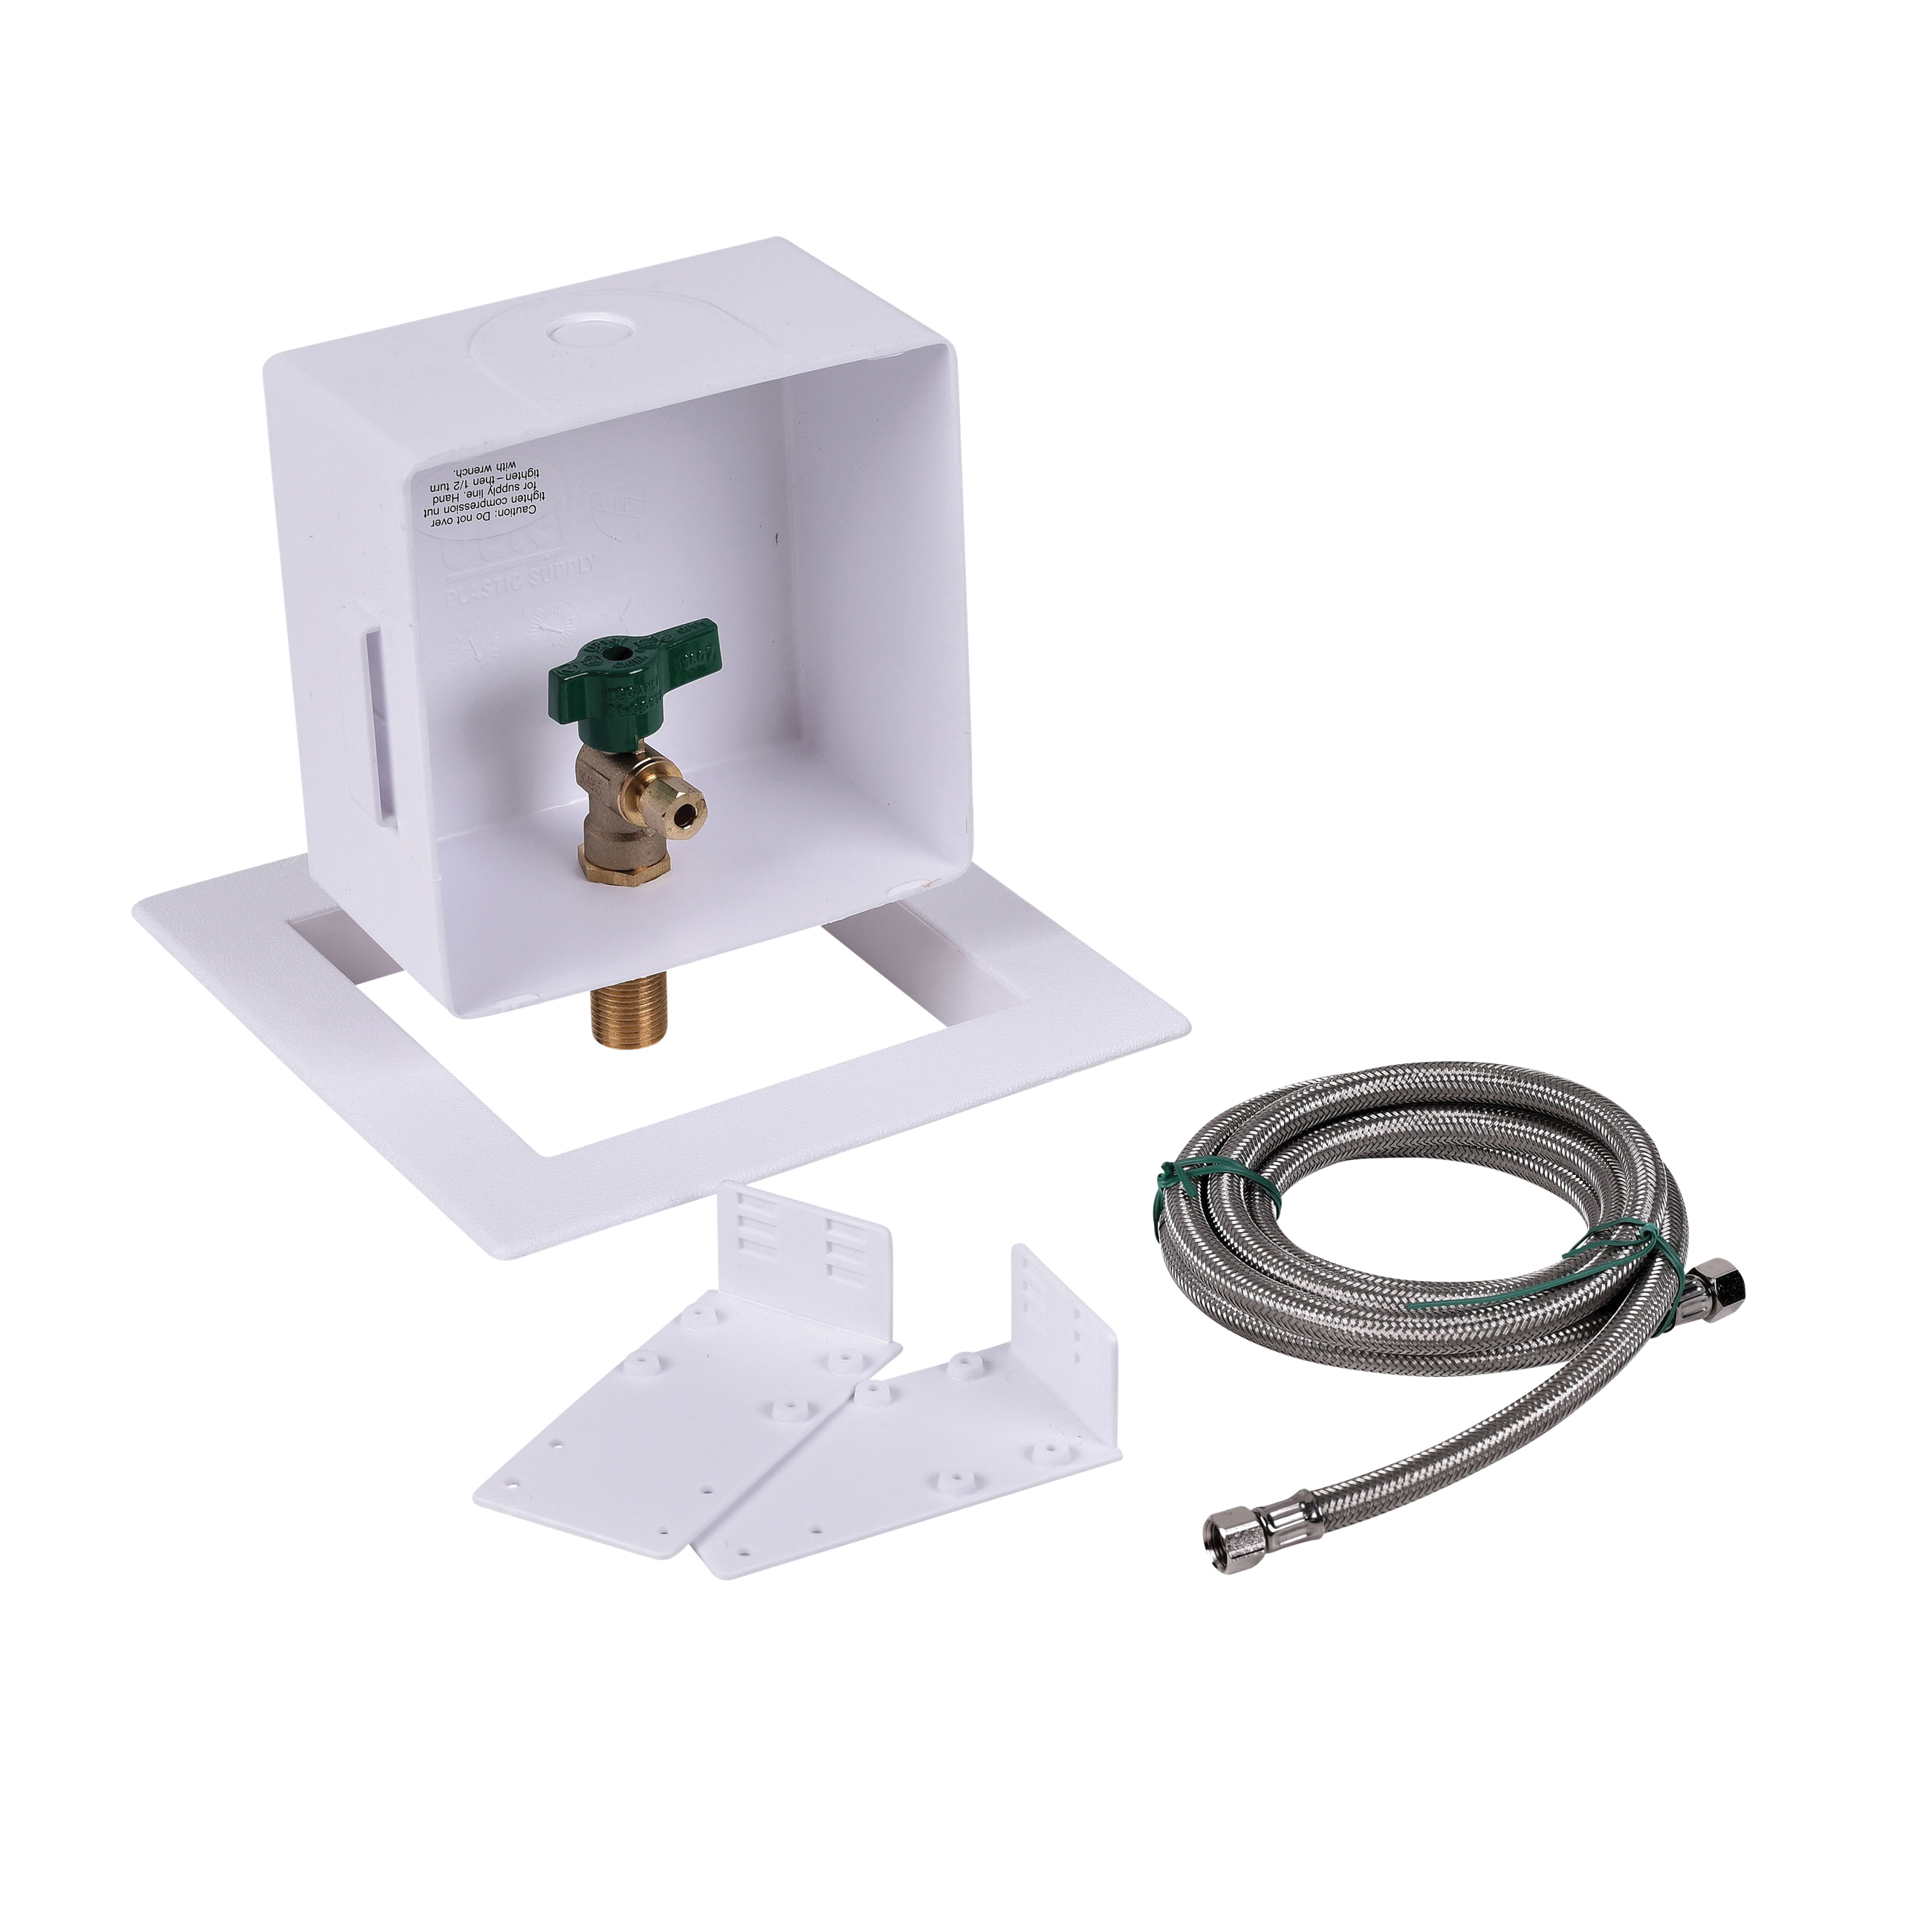 Oatey® 39145 Square Ice Maker Outlet Box Without Water Hammer Arrestor, C, Domestic